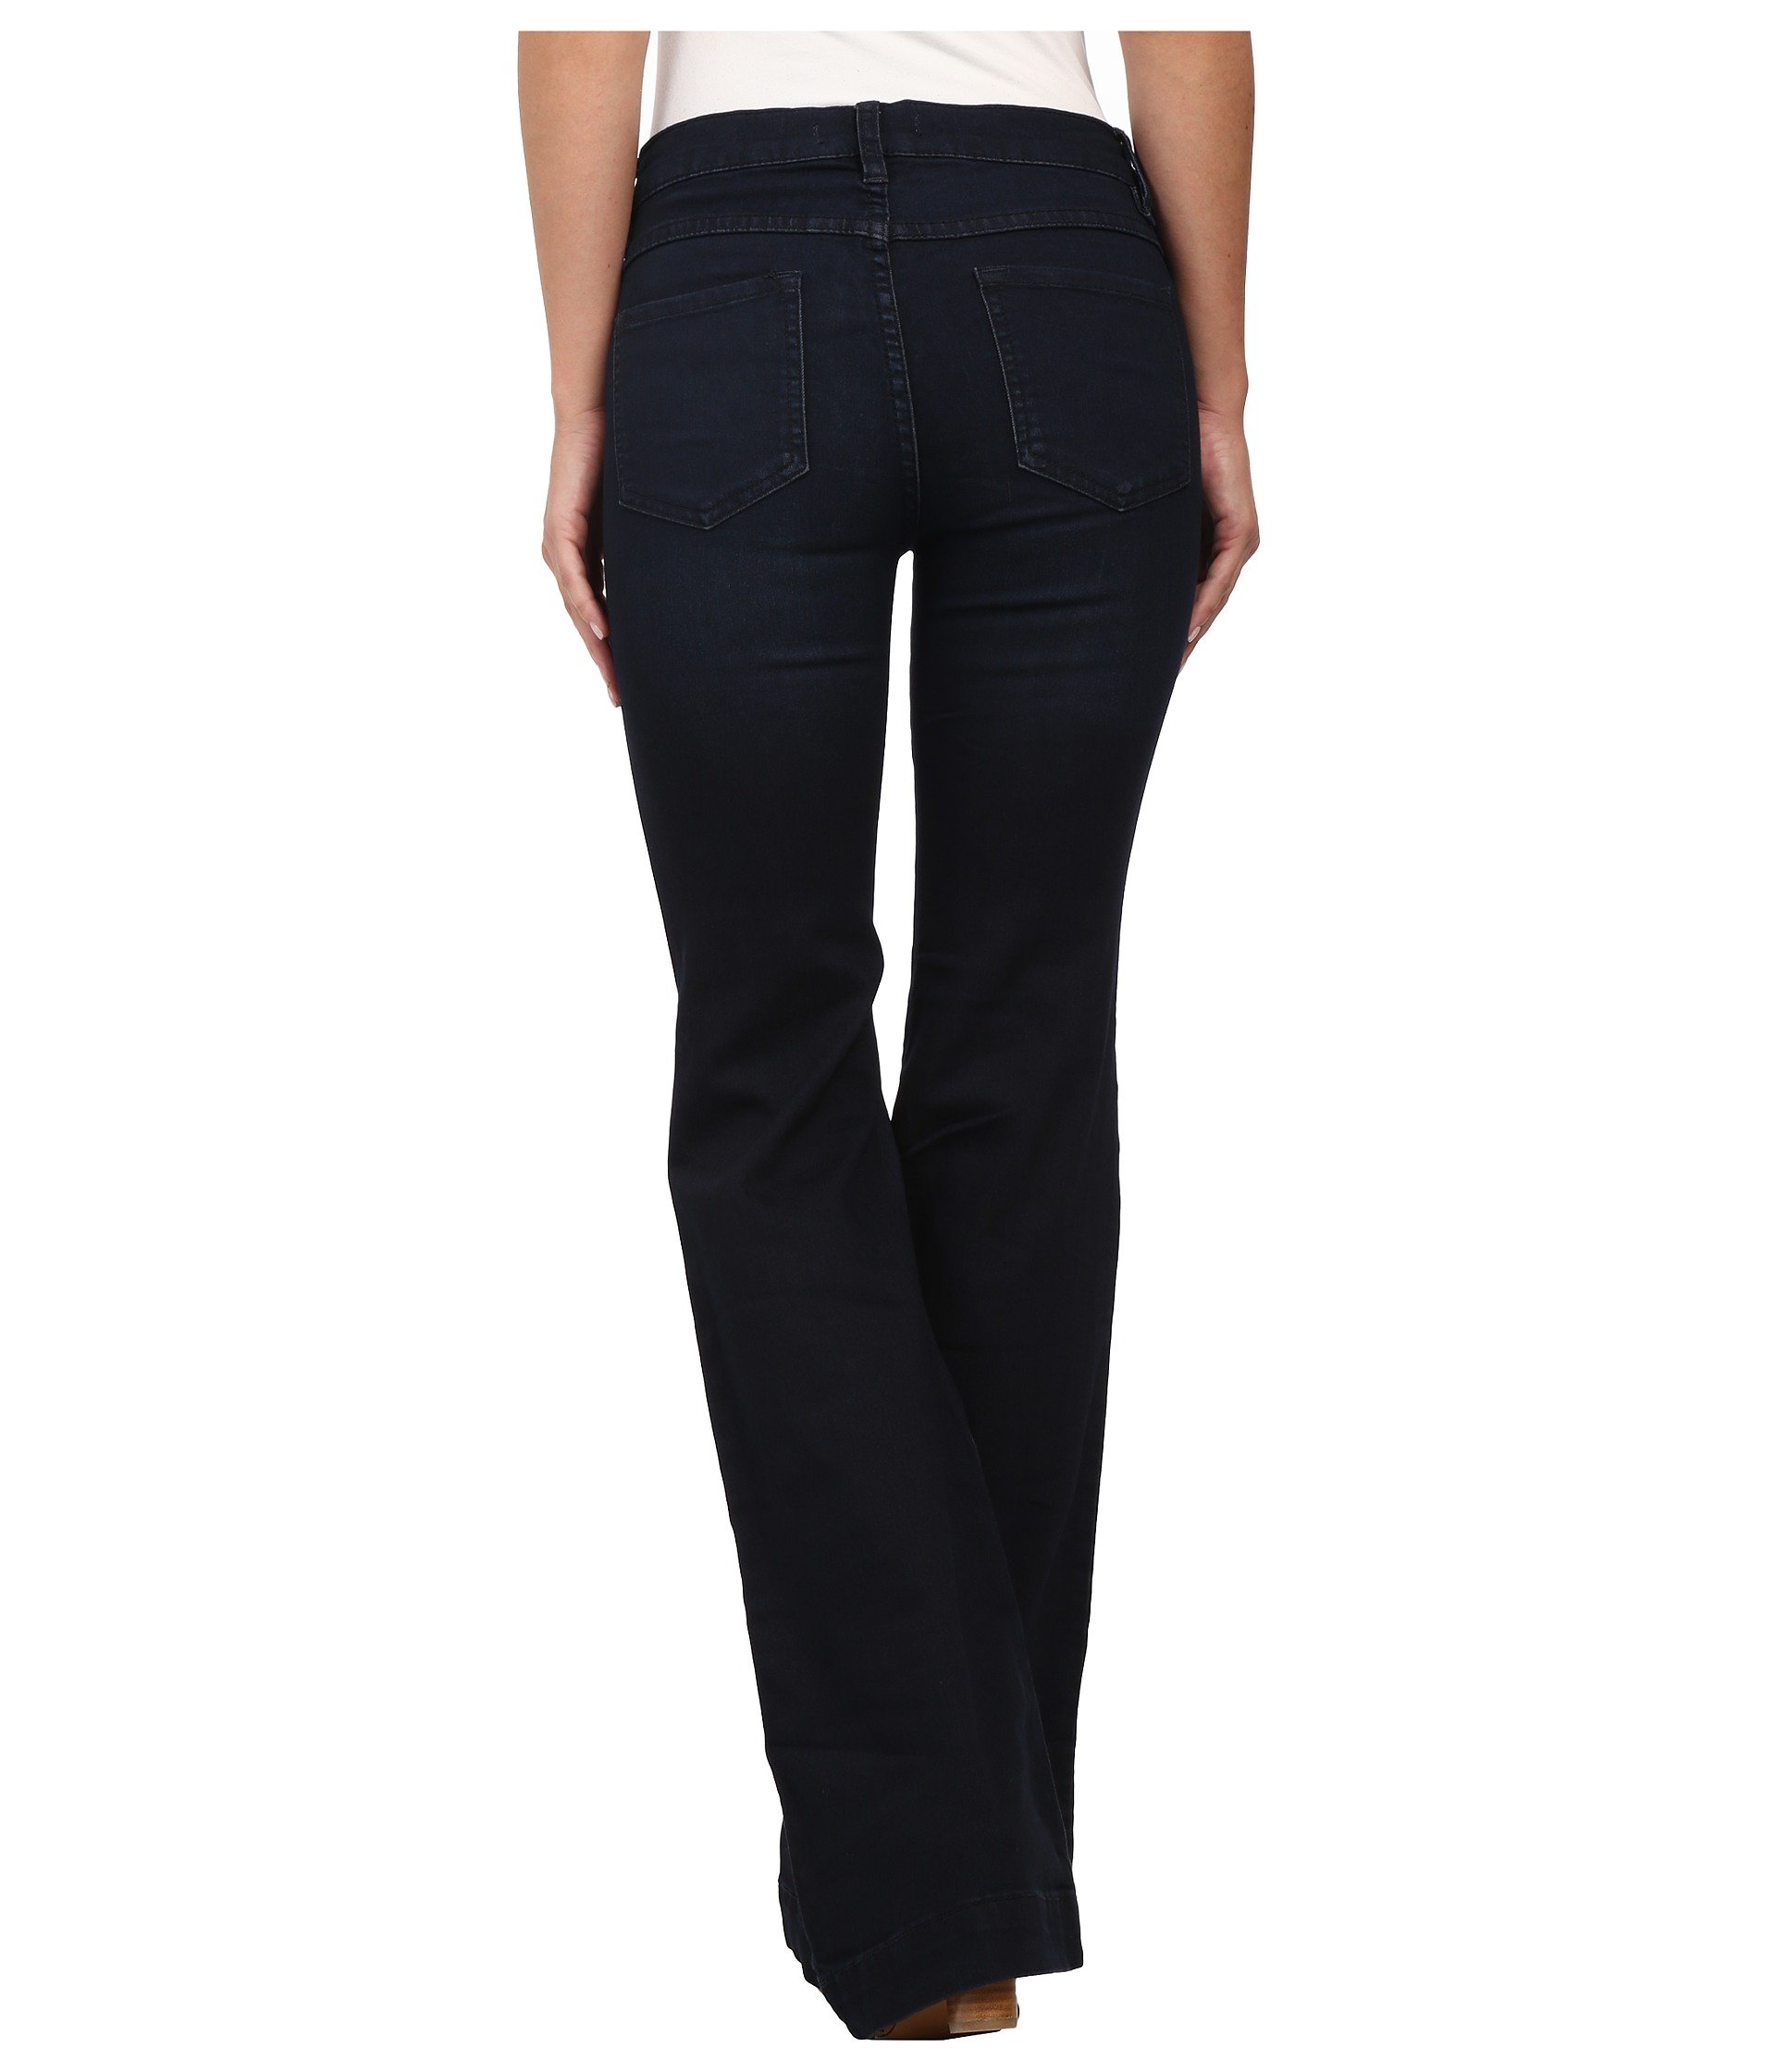 Free People Womens Denim Flare Flare Jeans Blue 24 by Free People (Image #4)